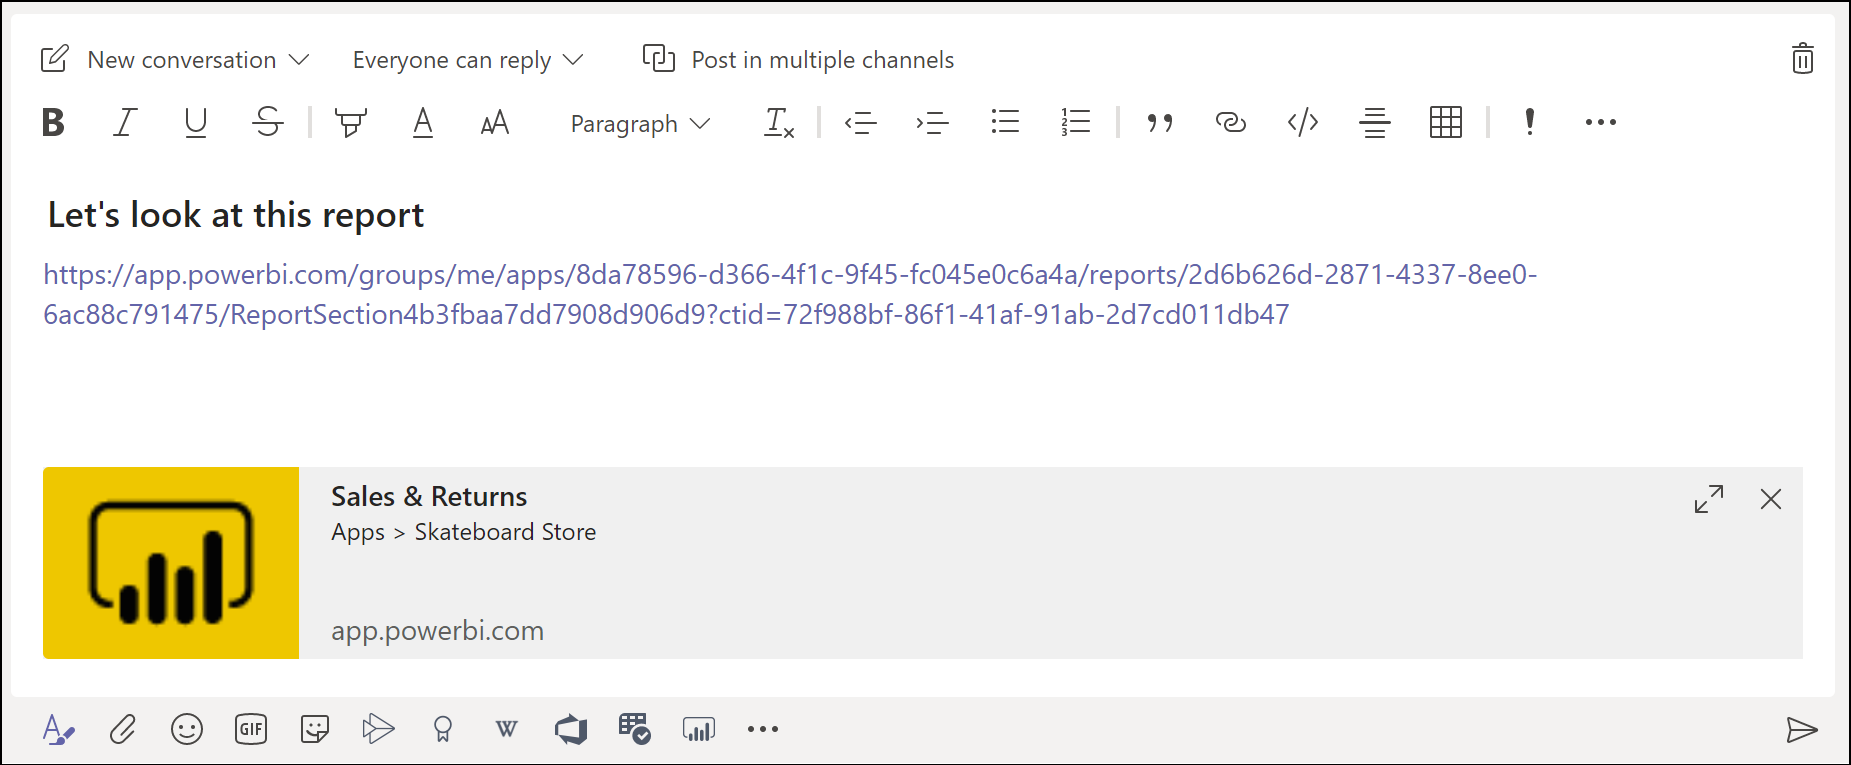 The Microsoft Teams message box is shown with a basic link preview for a Power BI report.